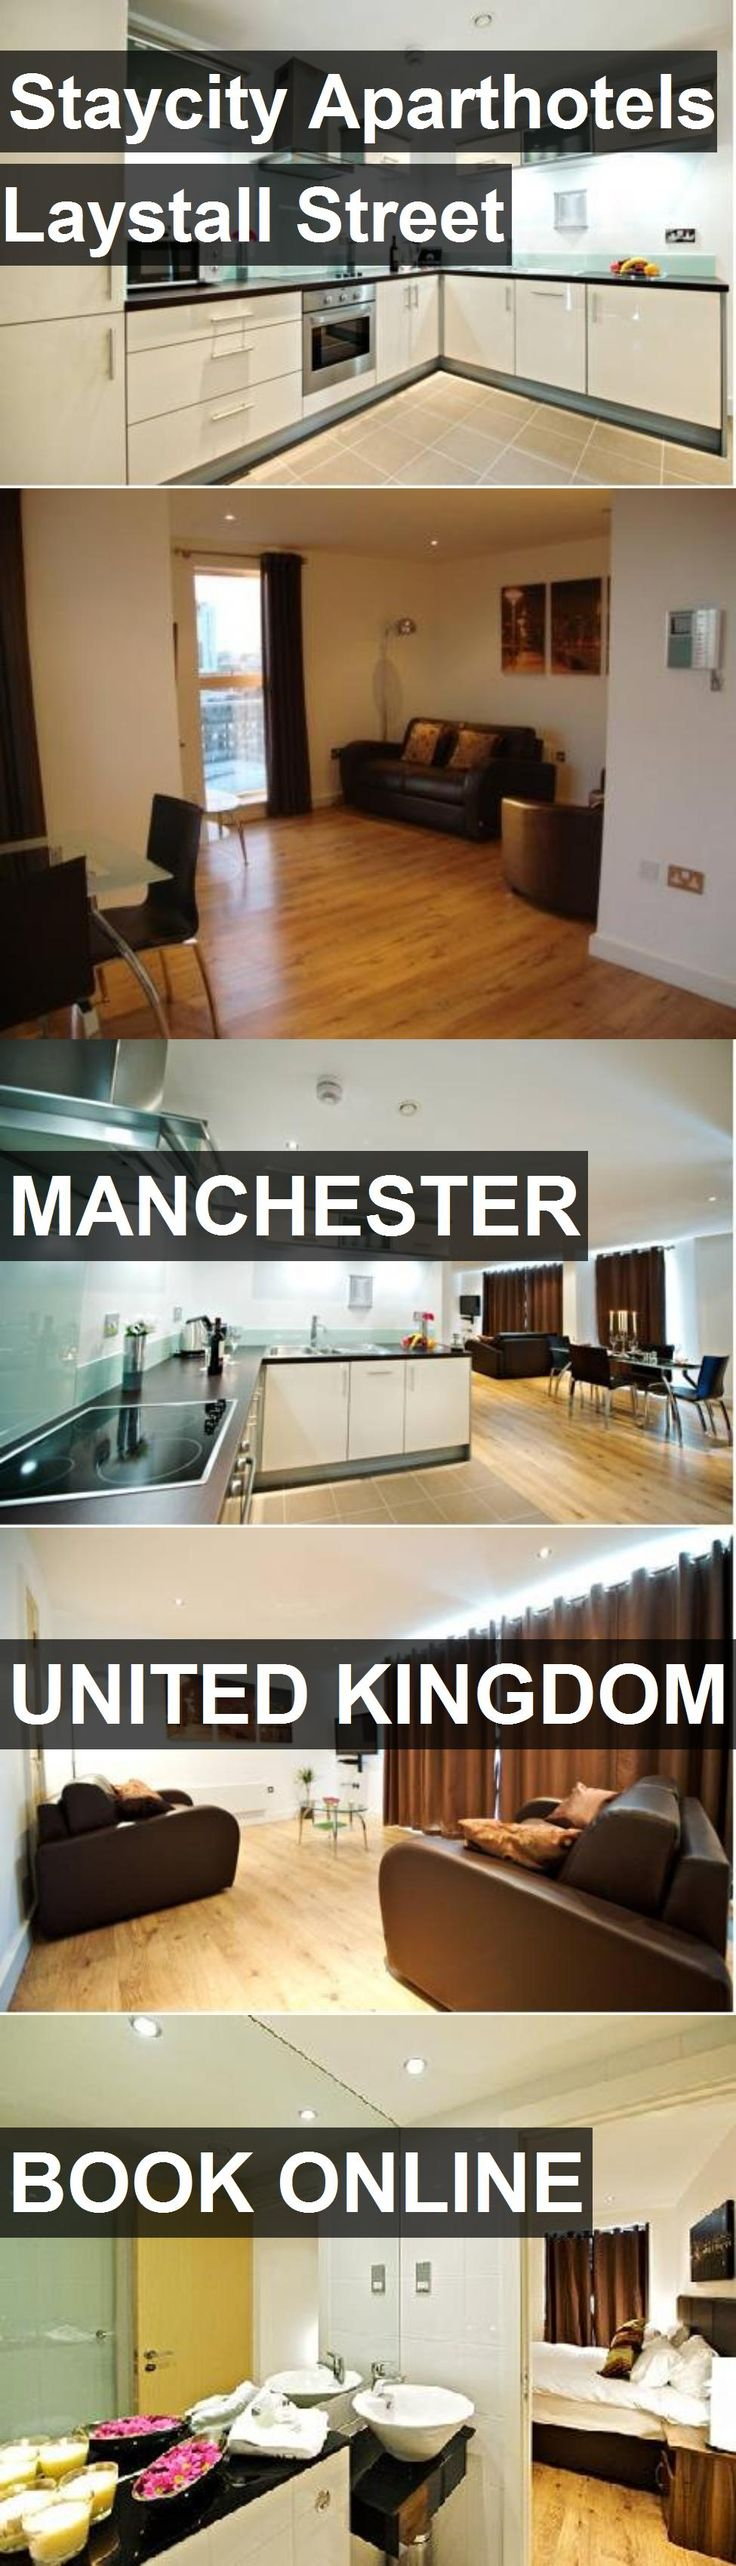 Staycity Aparthotels Laystall Street in Manchester, United Kingdom. For more information, photos, reviews and best prices please follow the link. #UnitedKingdom #Manchester #travel #vacation #hotel